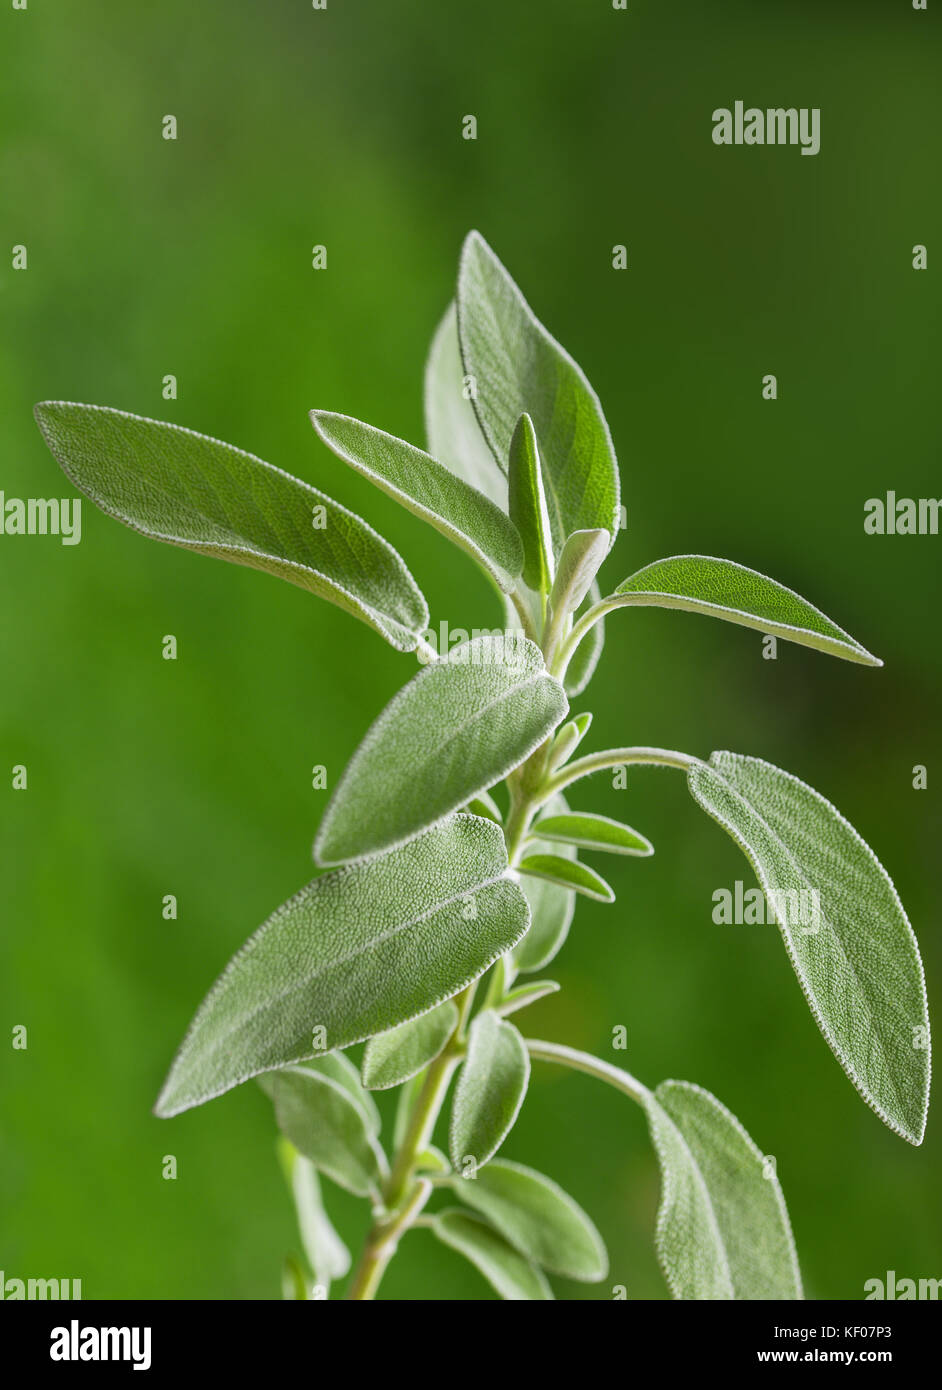 Sage plant (salvia officinalis) on blurred green background, - Stock Image